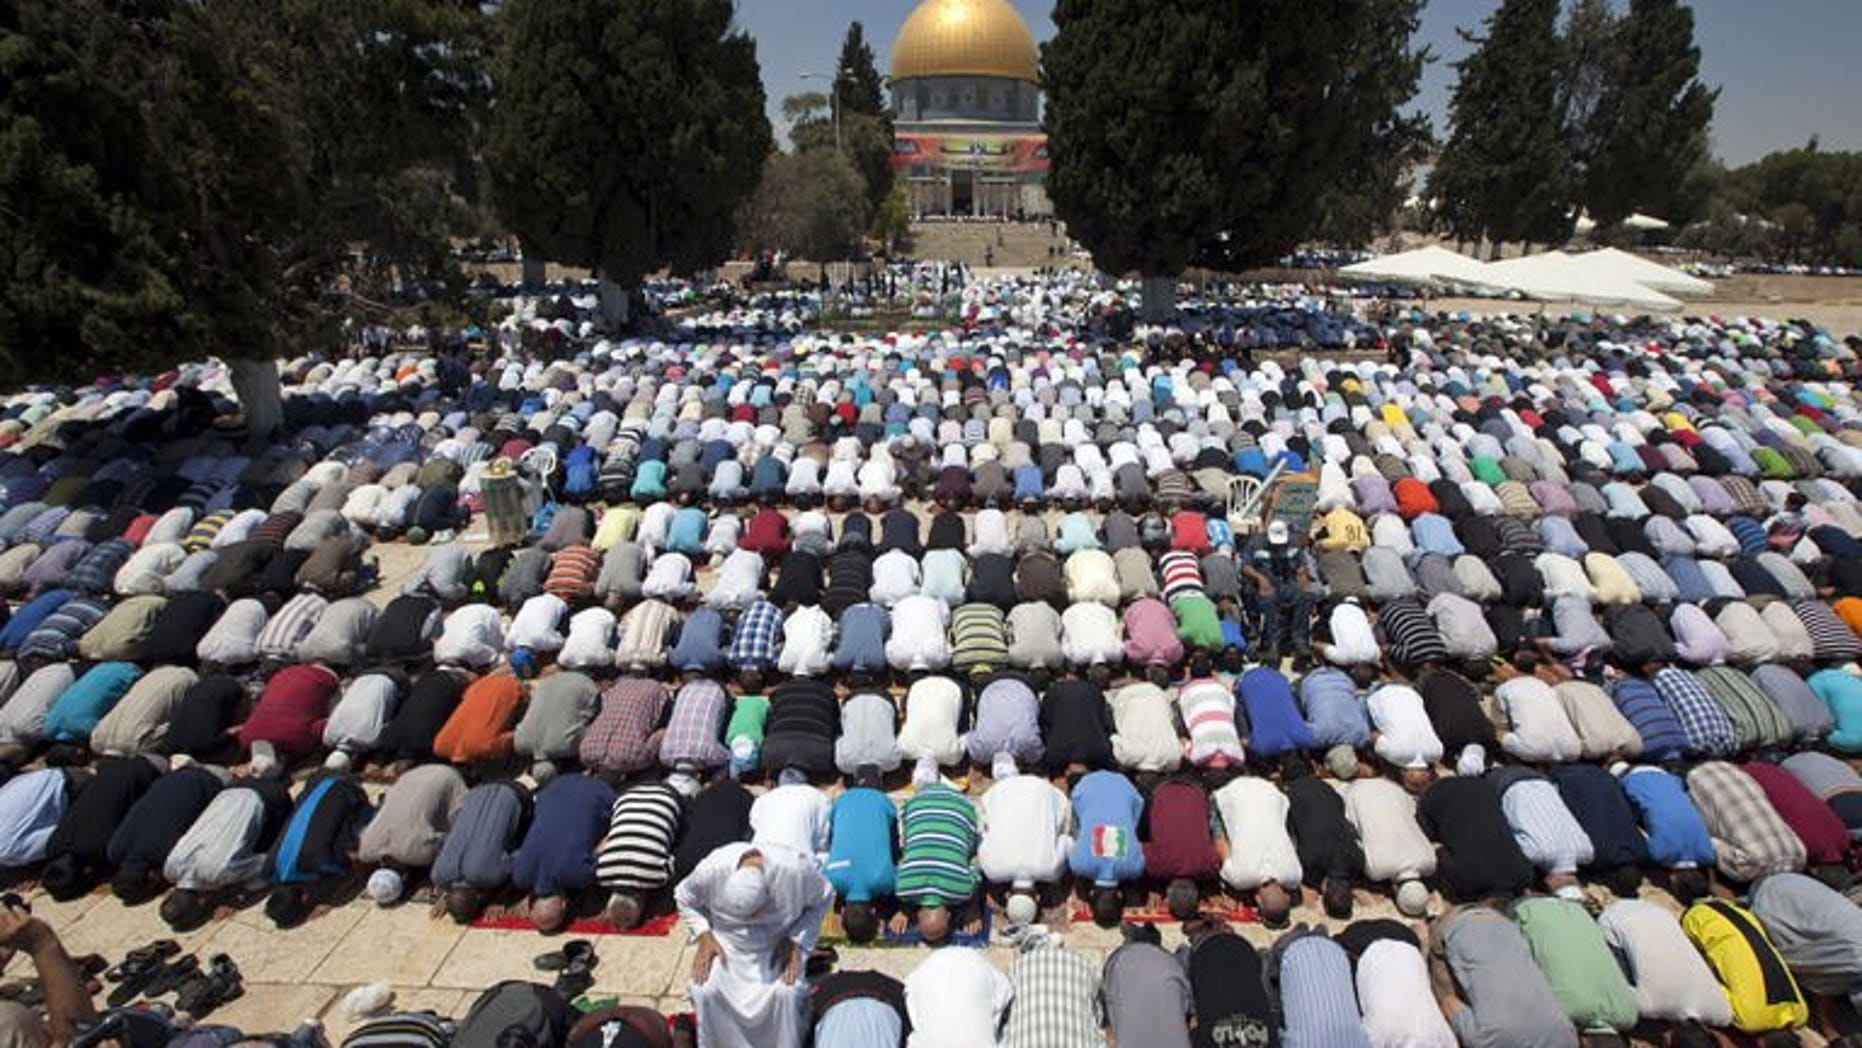 Palestinian worshipers pray outside the Dome of the Rock at the Al-Aqsa Mosque compound in Jerusalem during the first Friday prayers of the Muslim holy fasting month of Ramadan on July 12, 2013.